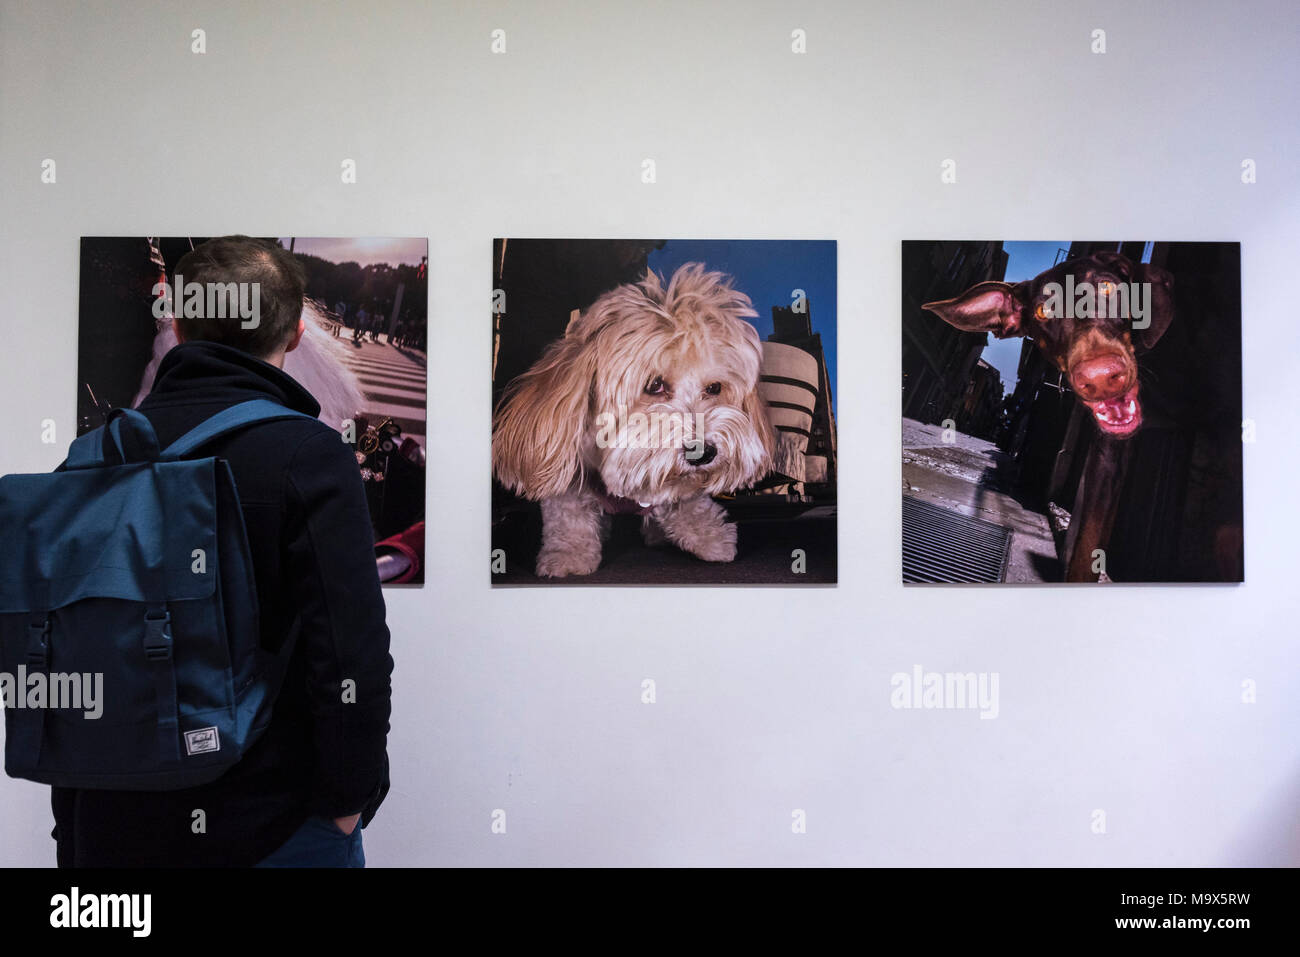 London, UK.  28 March 2018.  Visitors view works at the preview of 'The Series', an exhibition by Glaswegian street photographer Dougie Wallace at Bermondsey Project Space from 27 March to 14 April.  Works on display are from diverse subjects such as the mega-rich in Harrodsburg, Shoreditch, Blackpool as well as his latest project 'Well Heeled' a street photography book with dogs as the subject.  Credit: Stephen Chung / Alamy Live News - Stock Image